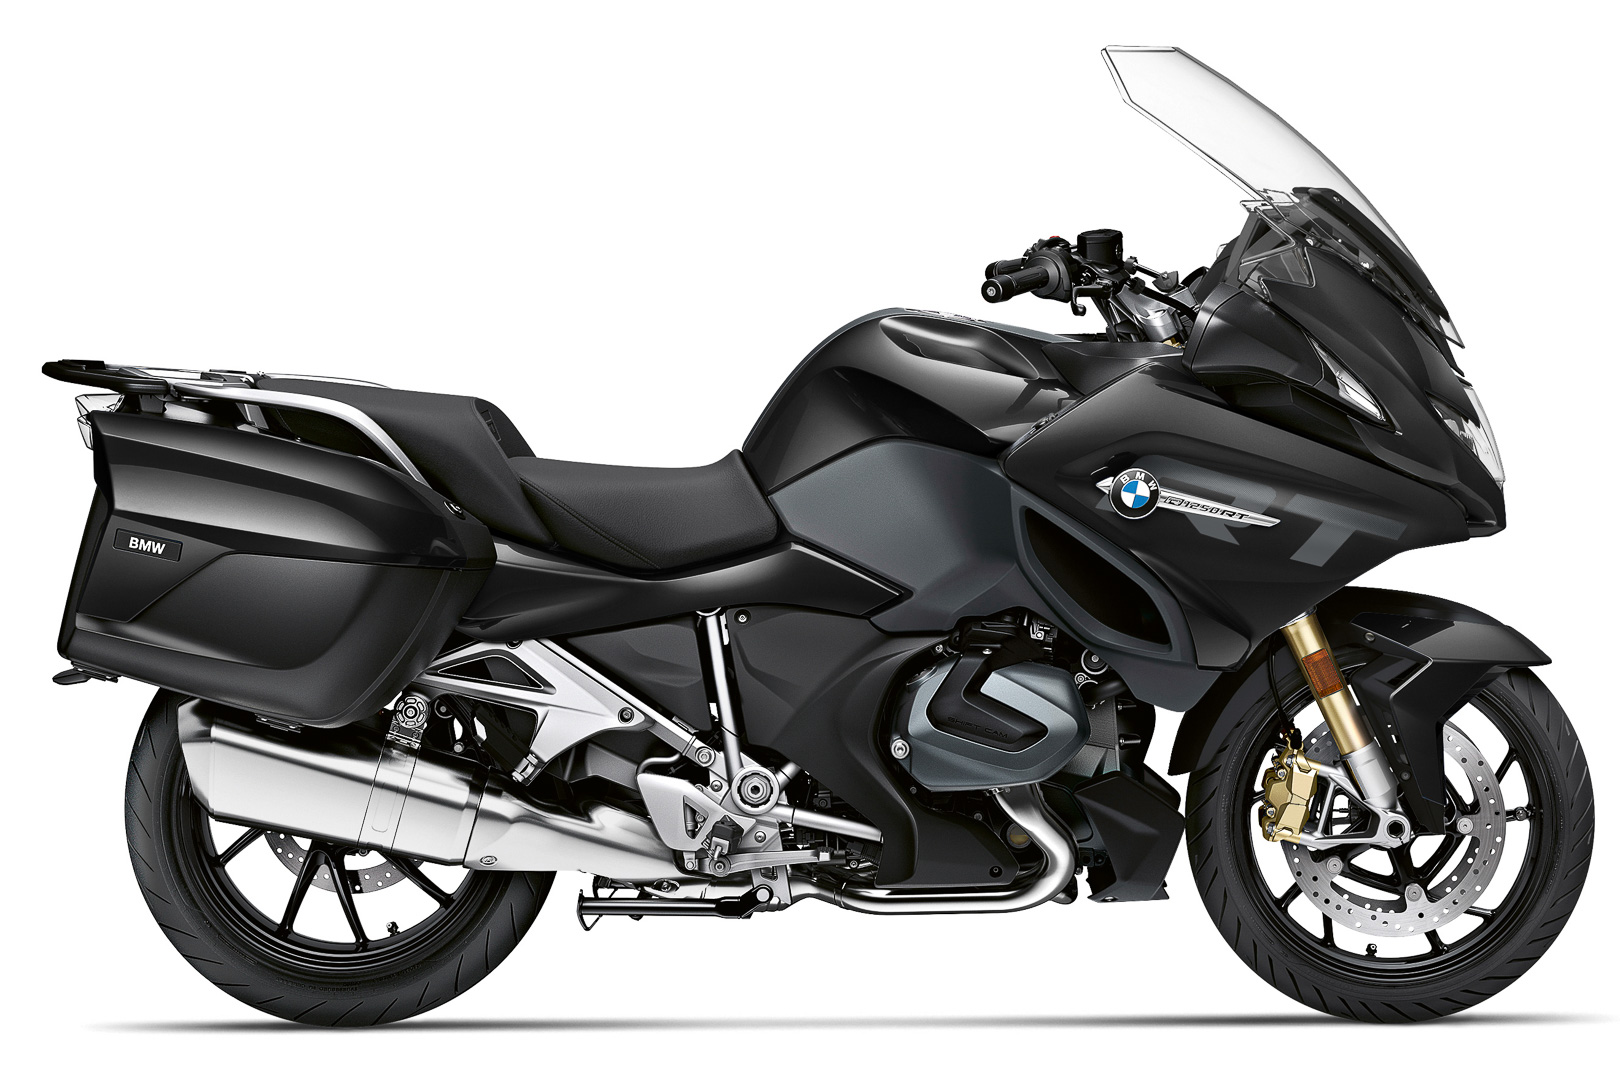 2022 BMW R 1250 RT: Price, MSRP, and For Sale